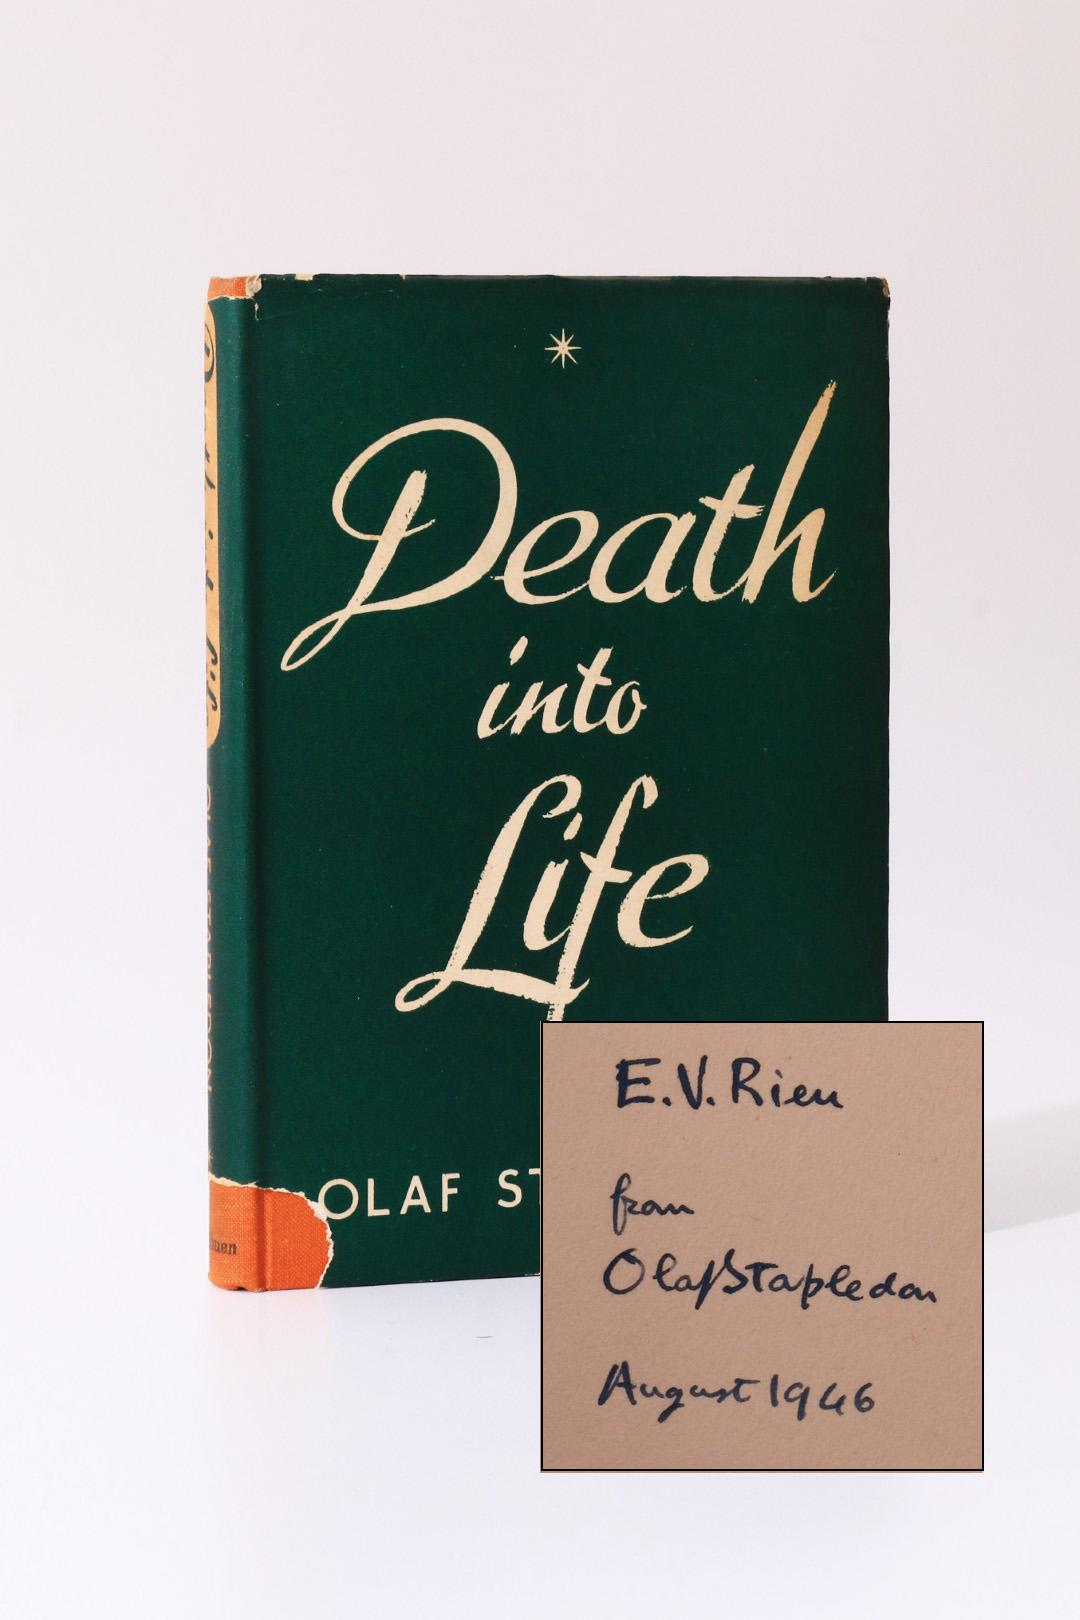 Olaf Stapledon - Death into Life - Methuen, 1946, Signed First Edition.